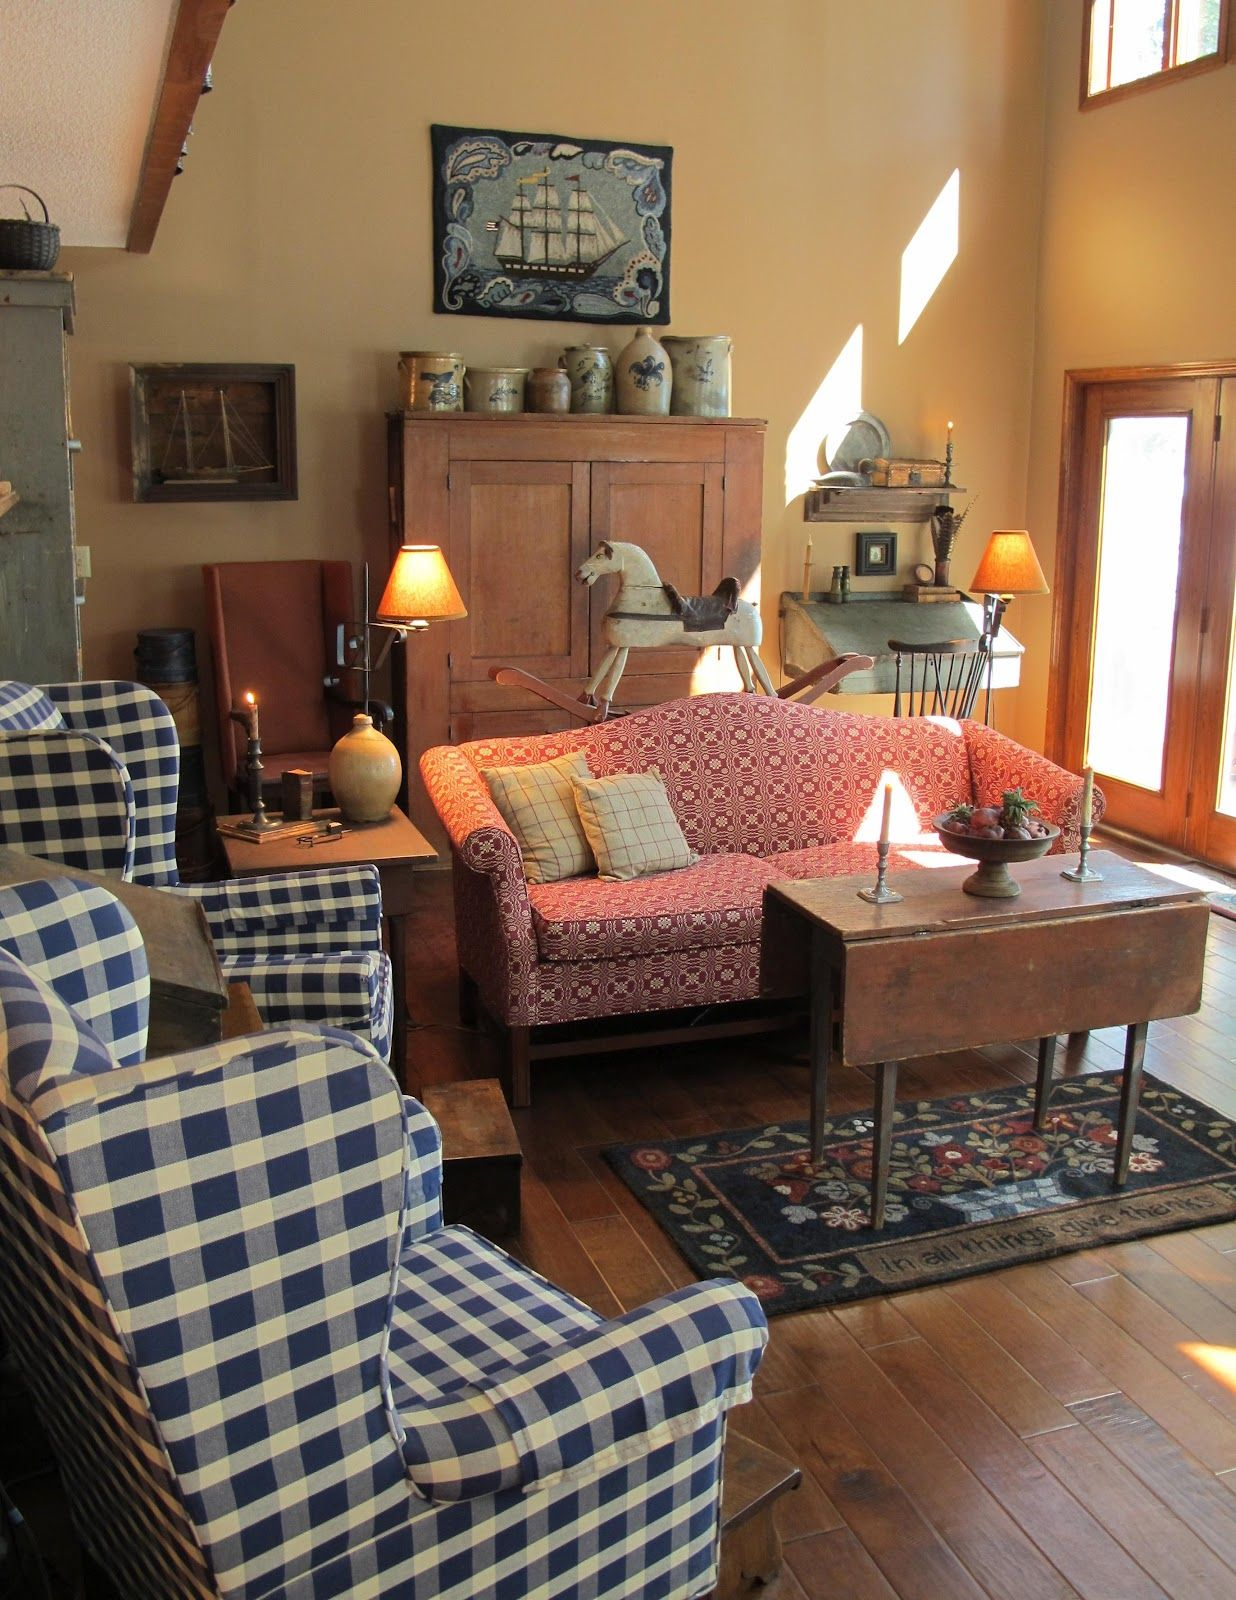 A primitive place country journal magazine summer 2012 - Primitive country living room ideas ...